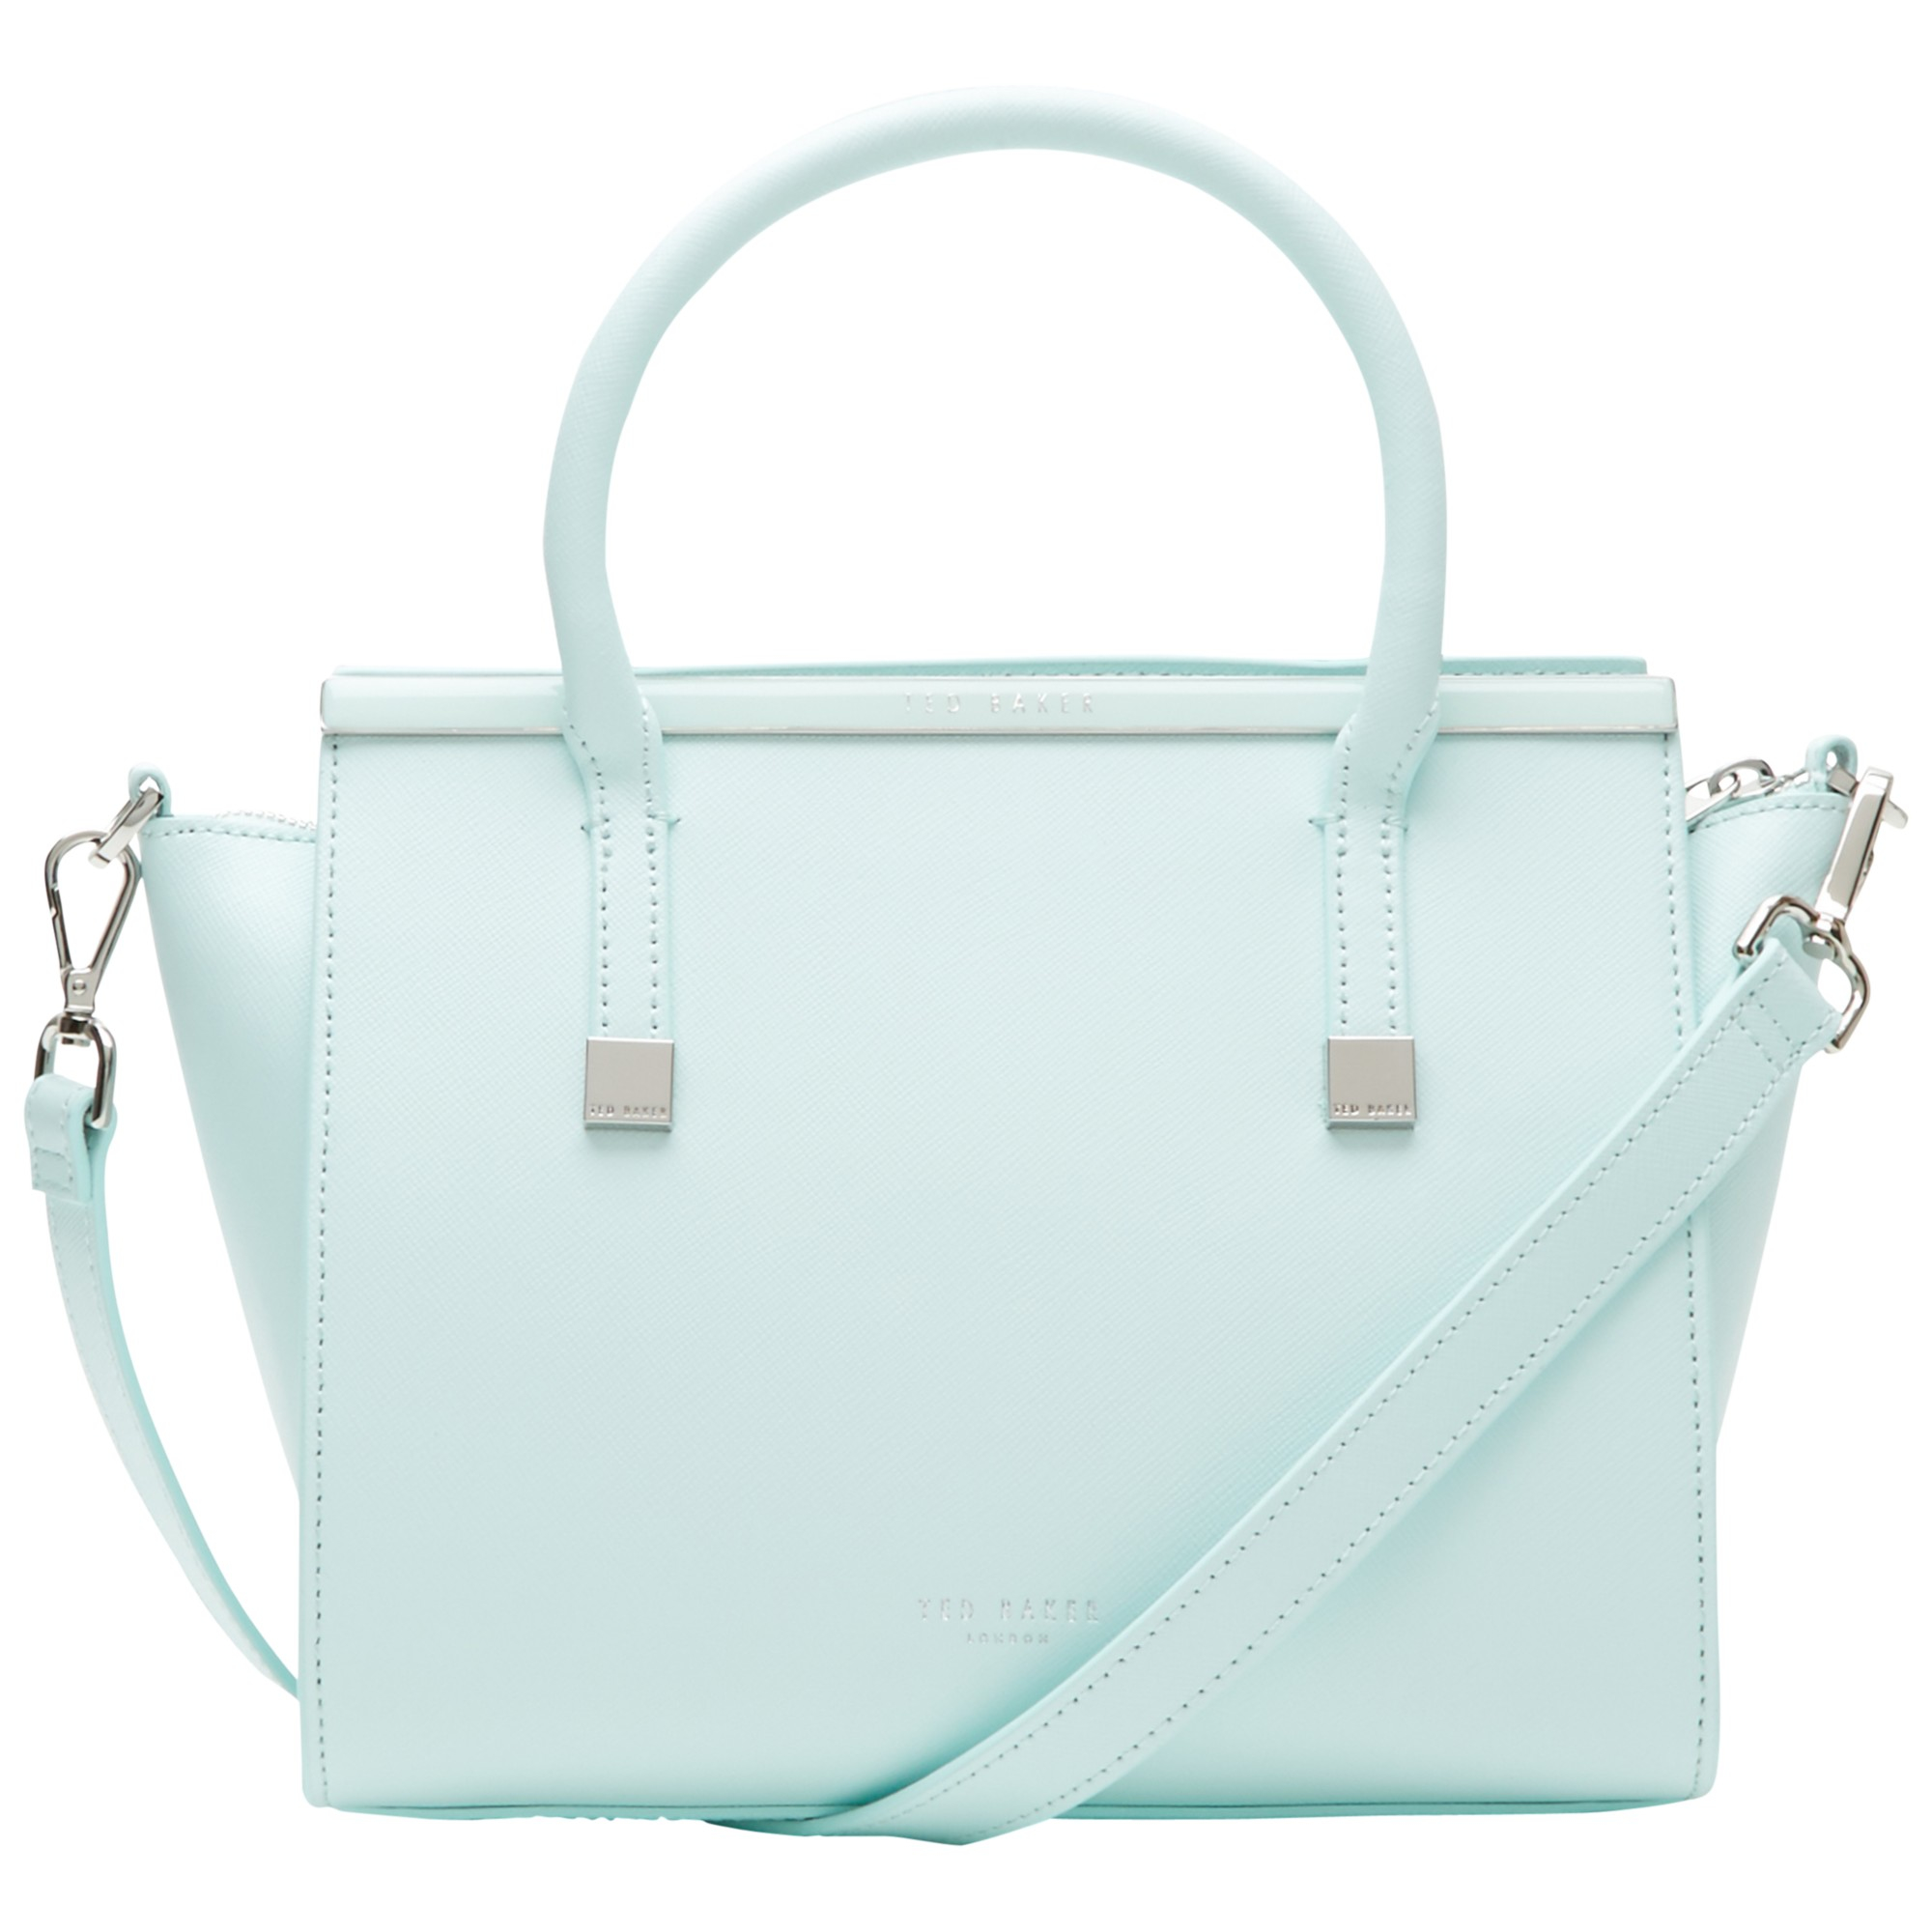 afc4e052fcfad3 Ted Baker Tabatha Crosshatch Leather Tote in Green - Lyst